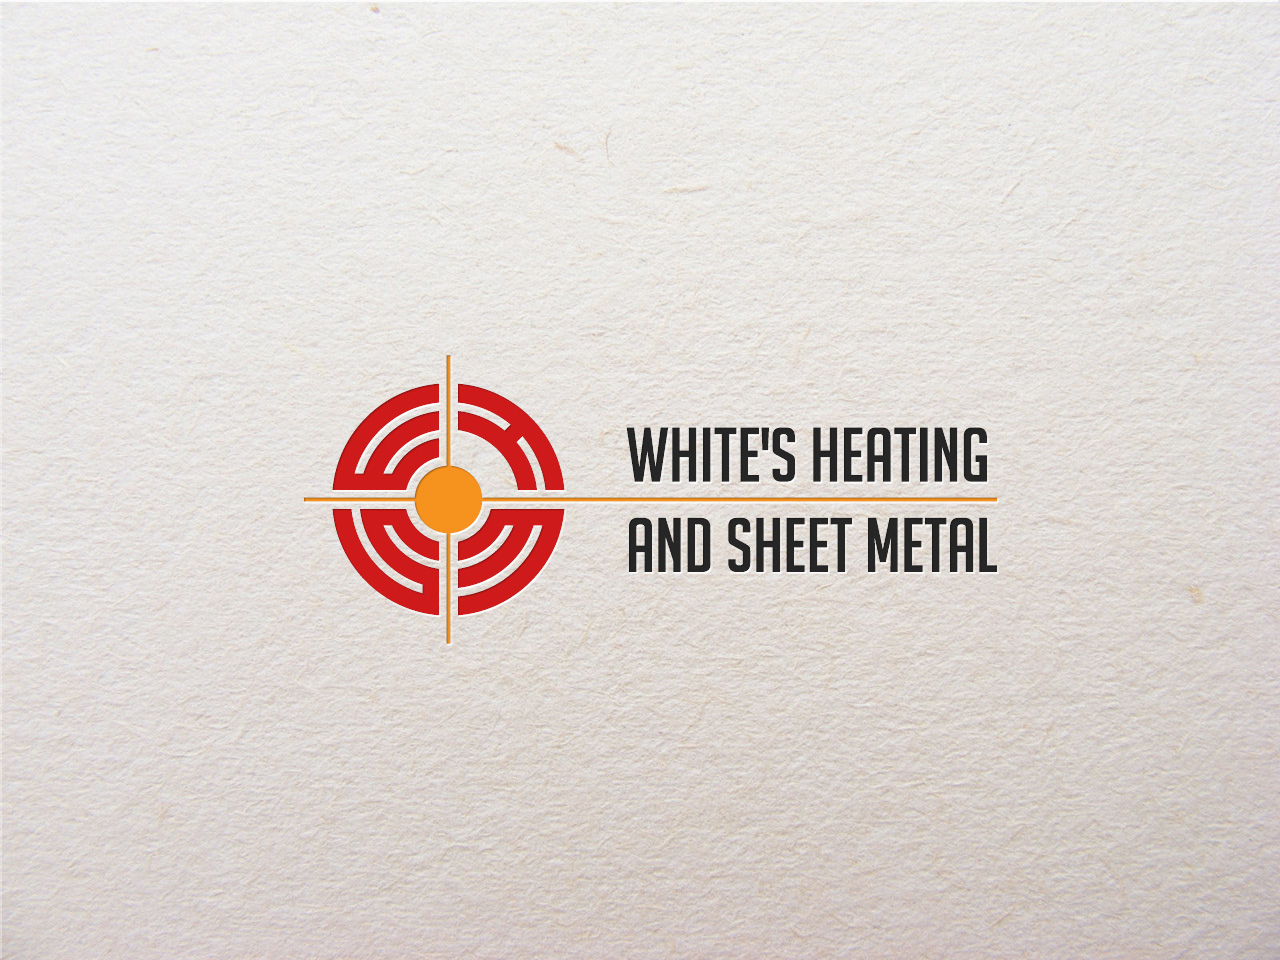 Logo Design by jpbituin - Entry No. 119 in the Logo Design Contest Imaginative Logo Design for White's Heating and Sheet Metal.